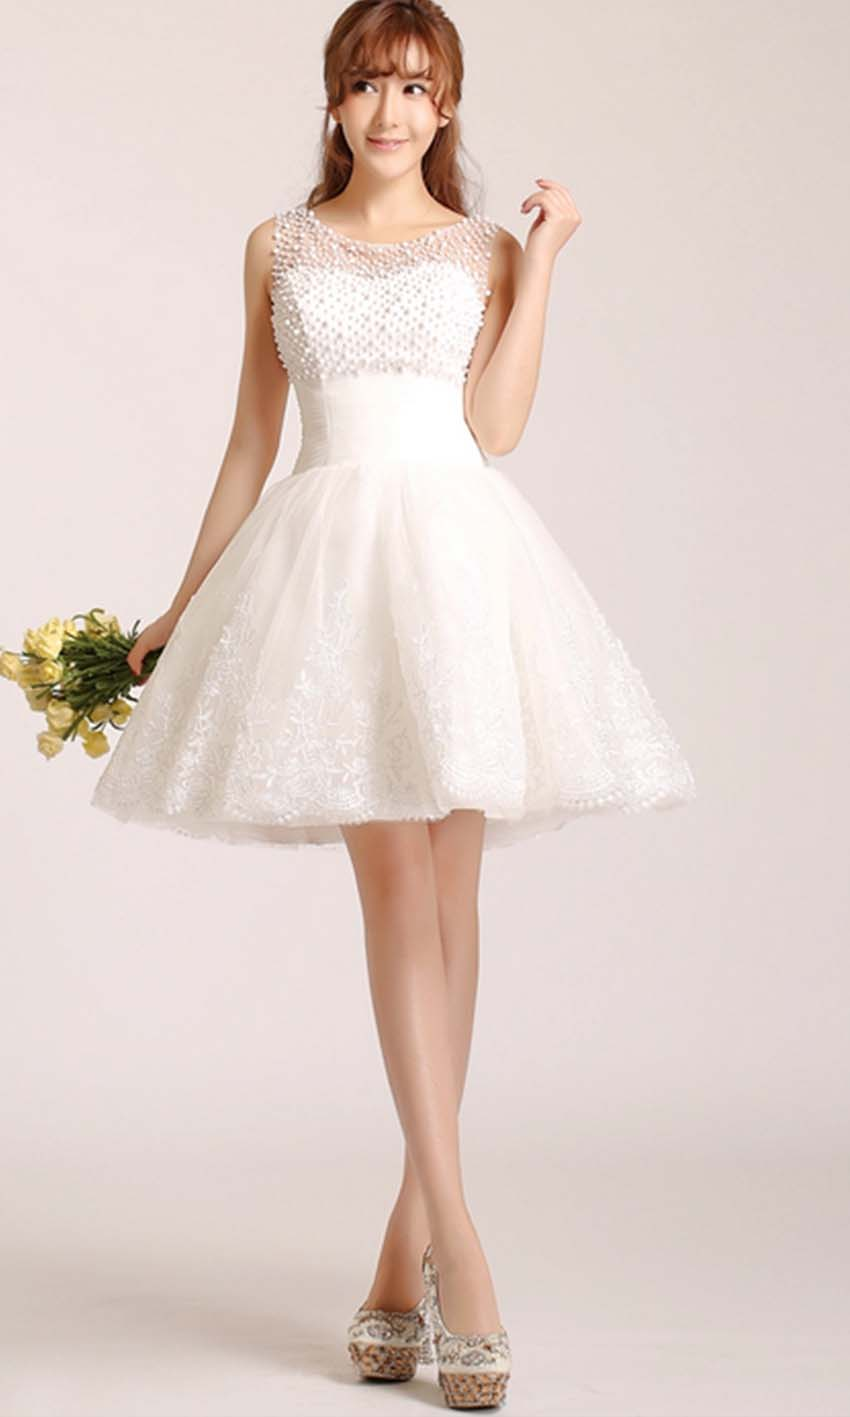 Cute White Short Lace Prom Dress With Pearl Mesh Top Ksp239 Ksp239